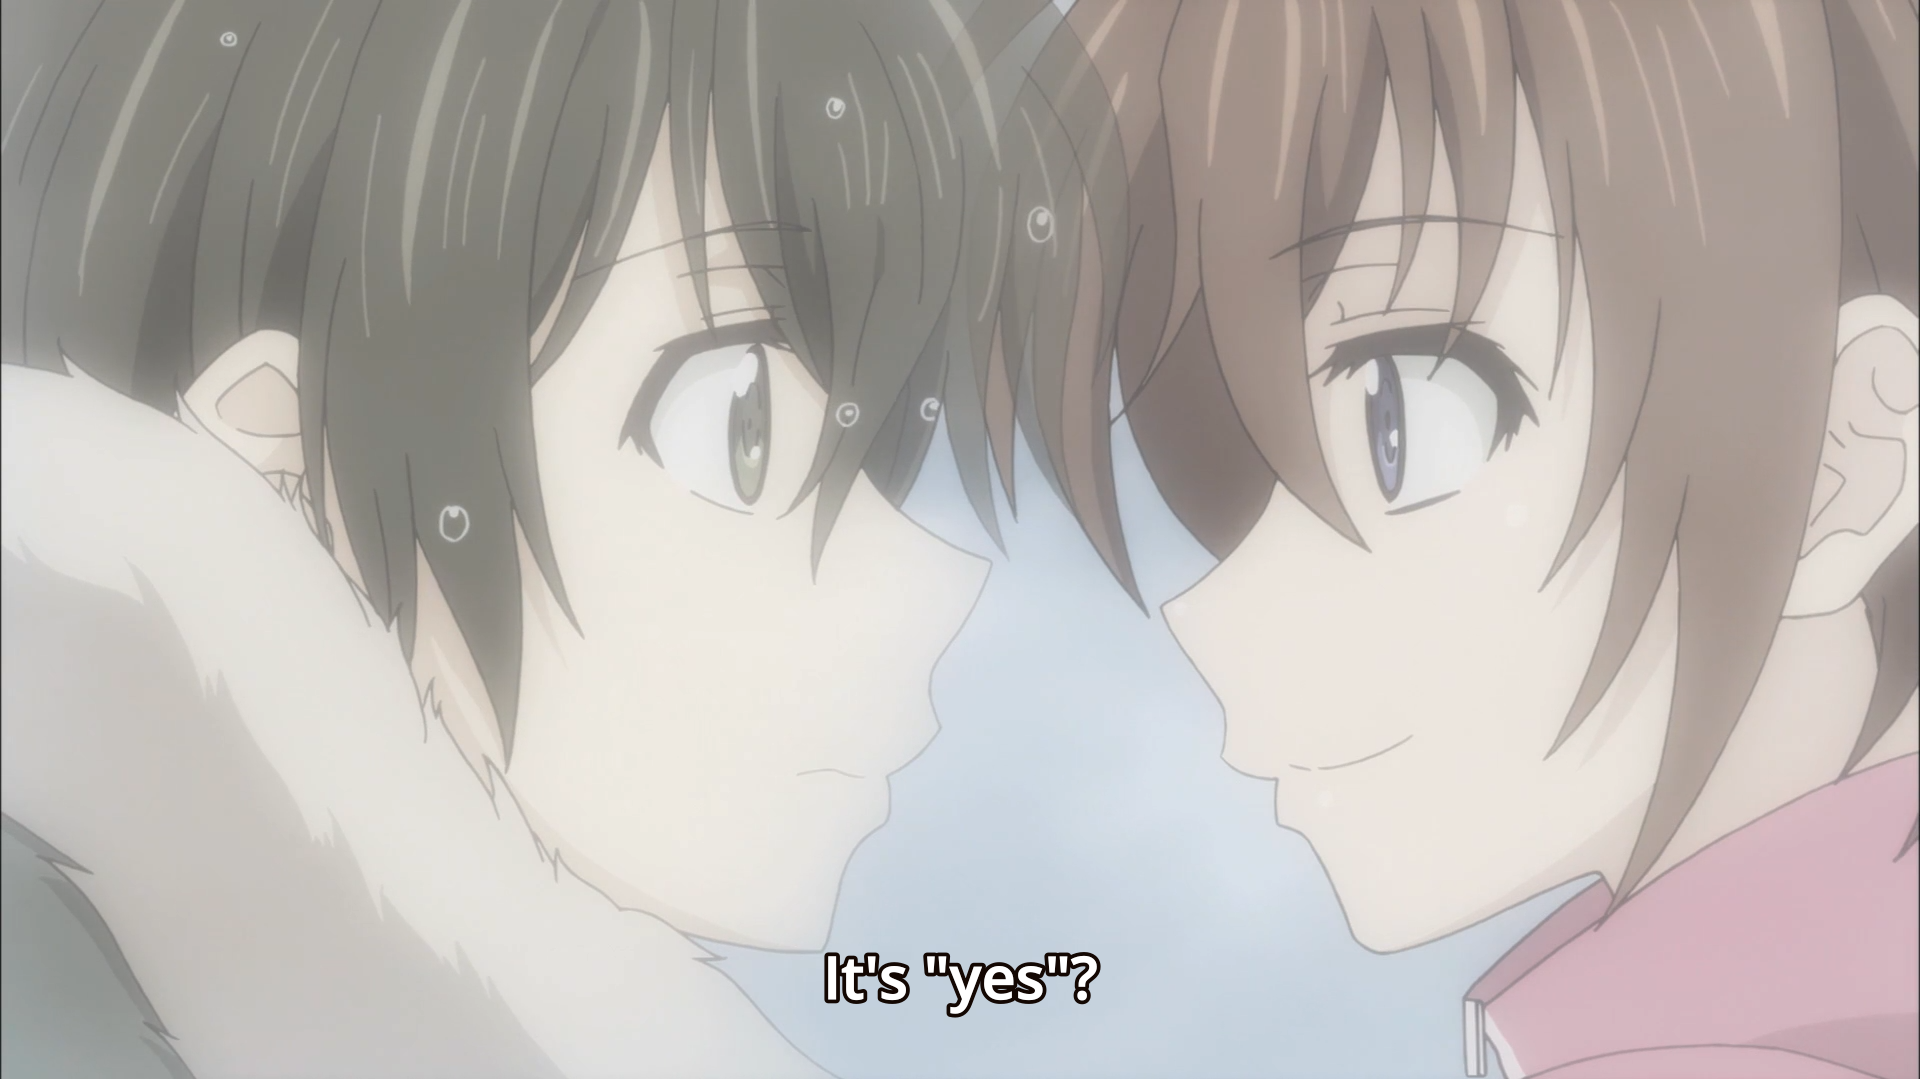 Spoilers] Golden Time Episode 24 (END) Discussion : anime